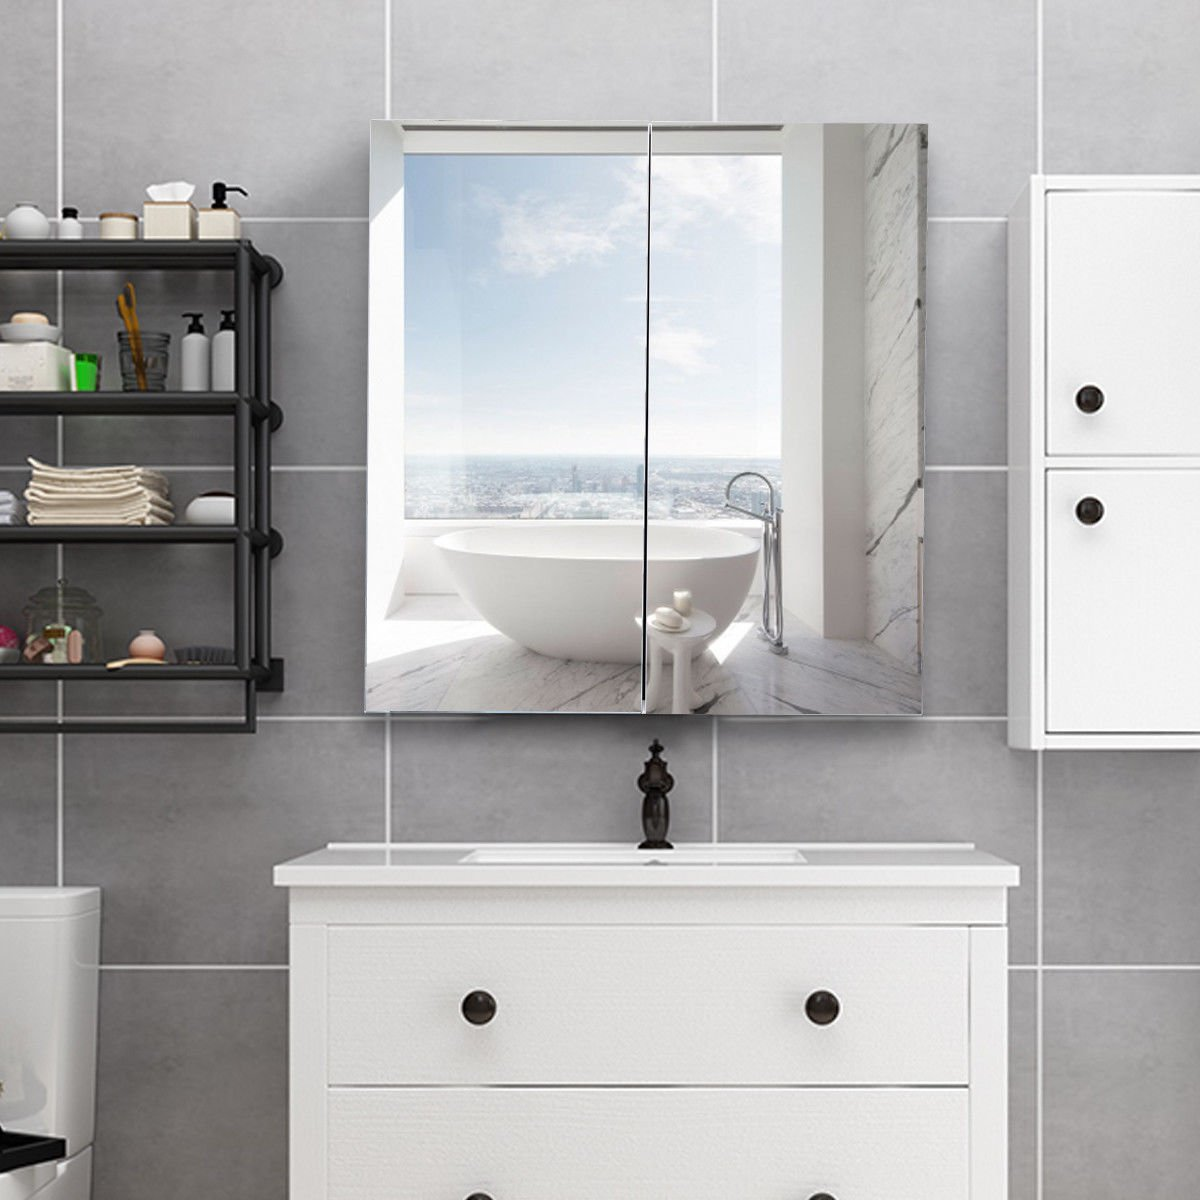 Cheap Argos Mirrored Bathroom Cabinet, find Argos Mirrored